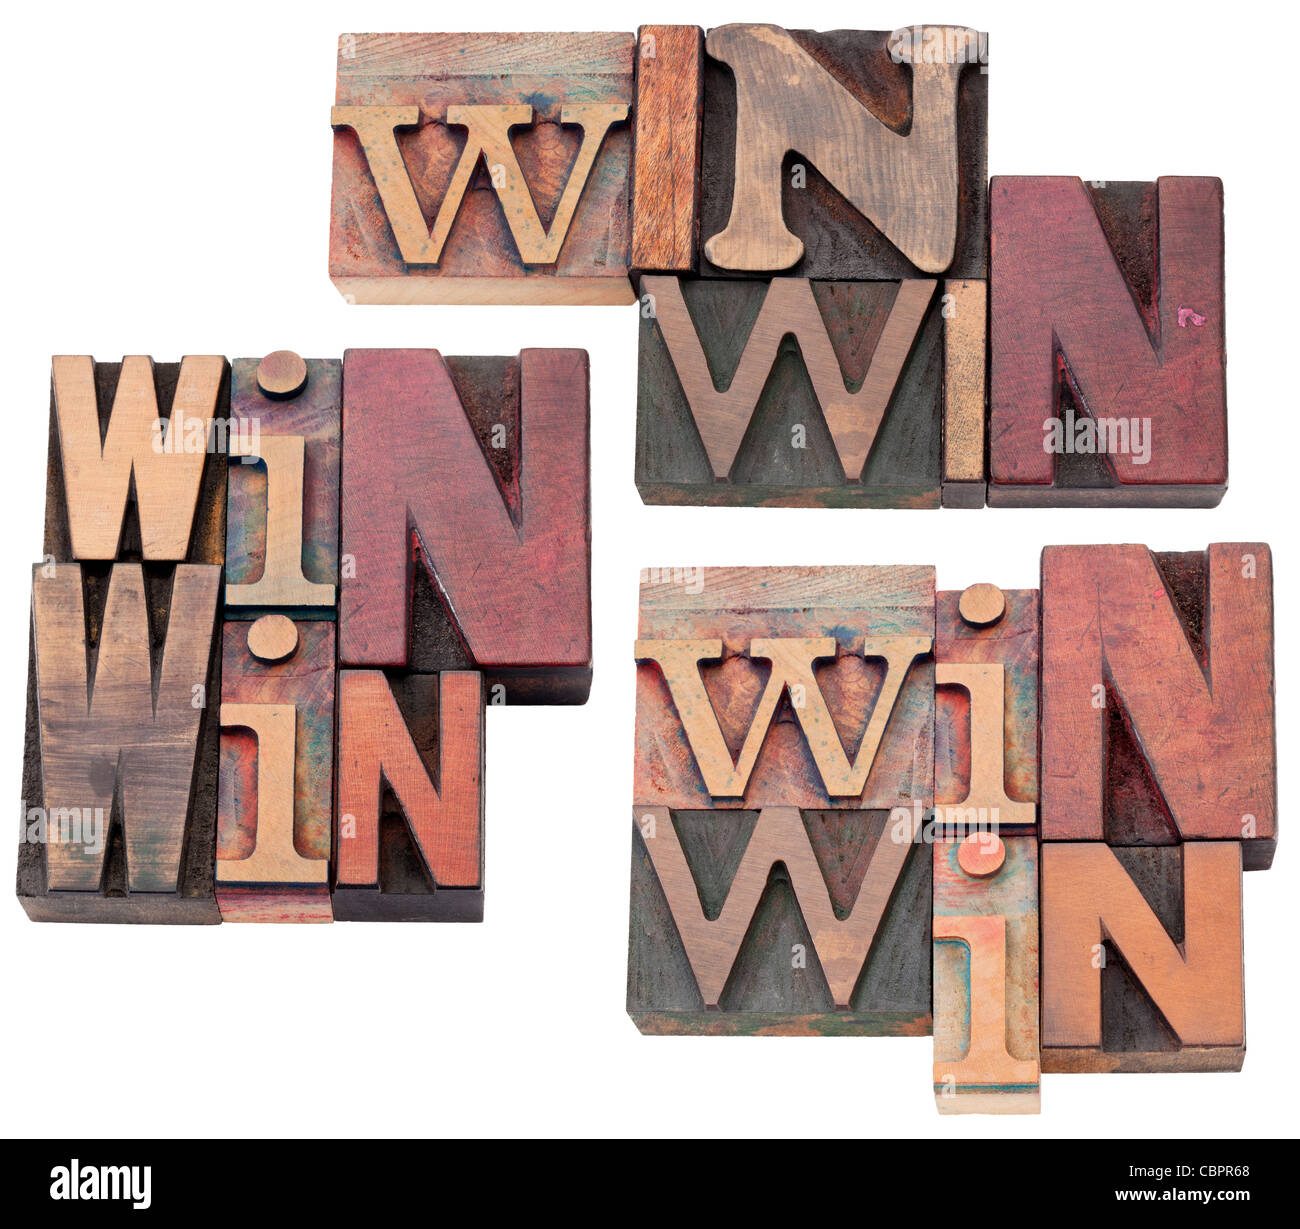 win-win strategy, negotiation or conflict resolution concept - isolated text in vintage wood letterpress type blocks - Stock Image